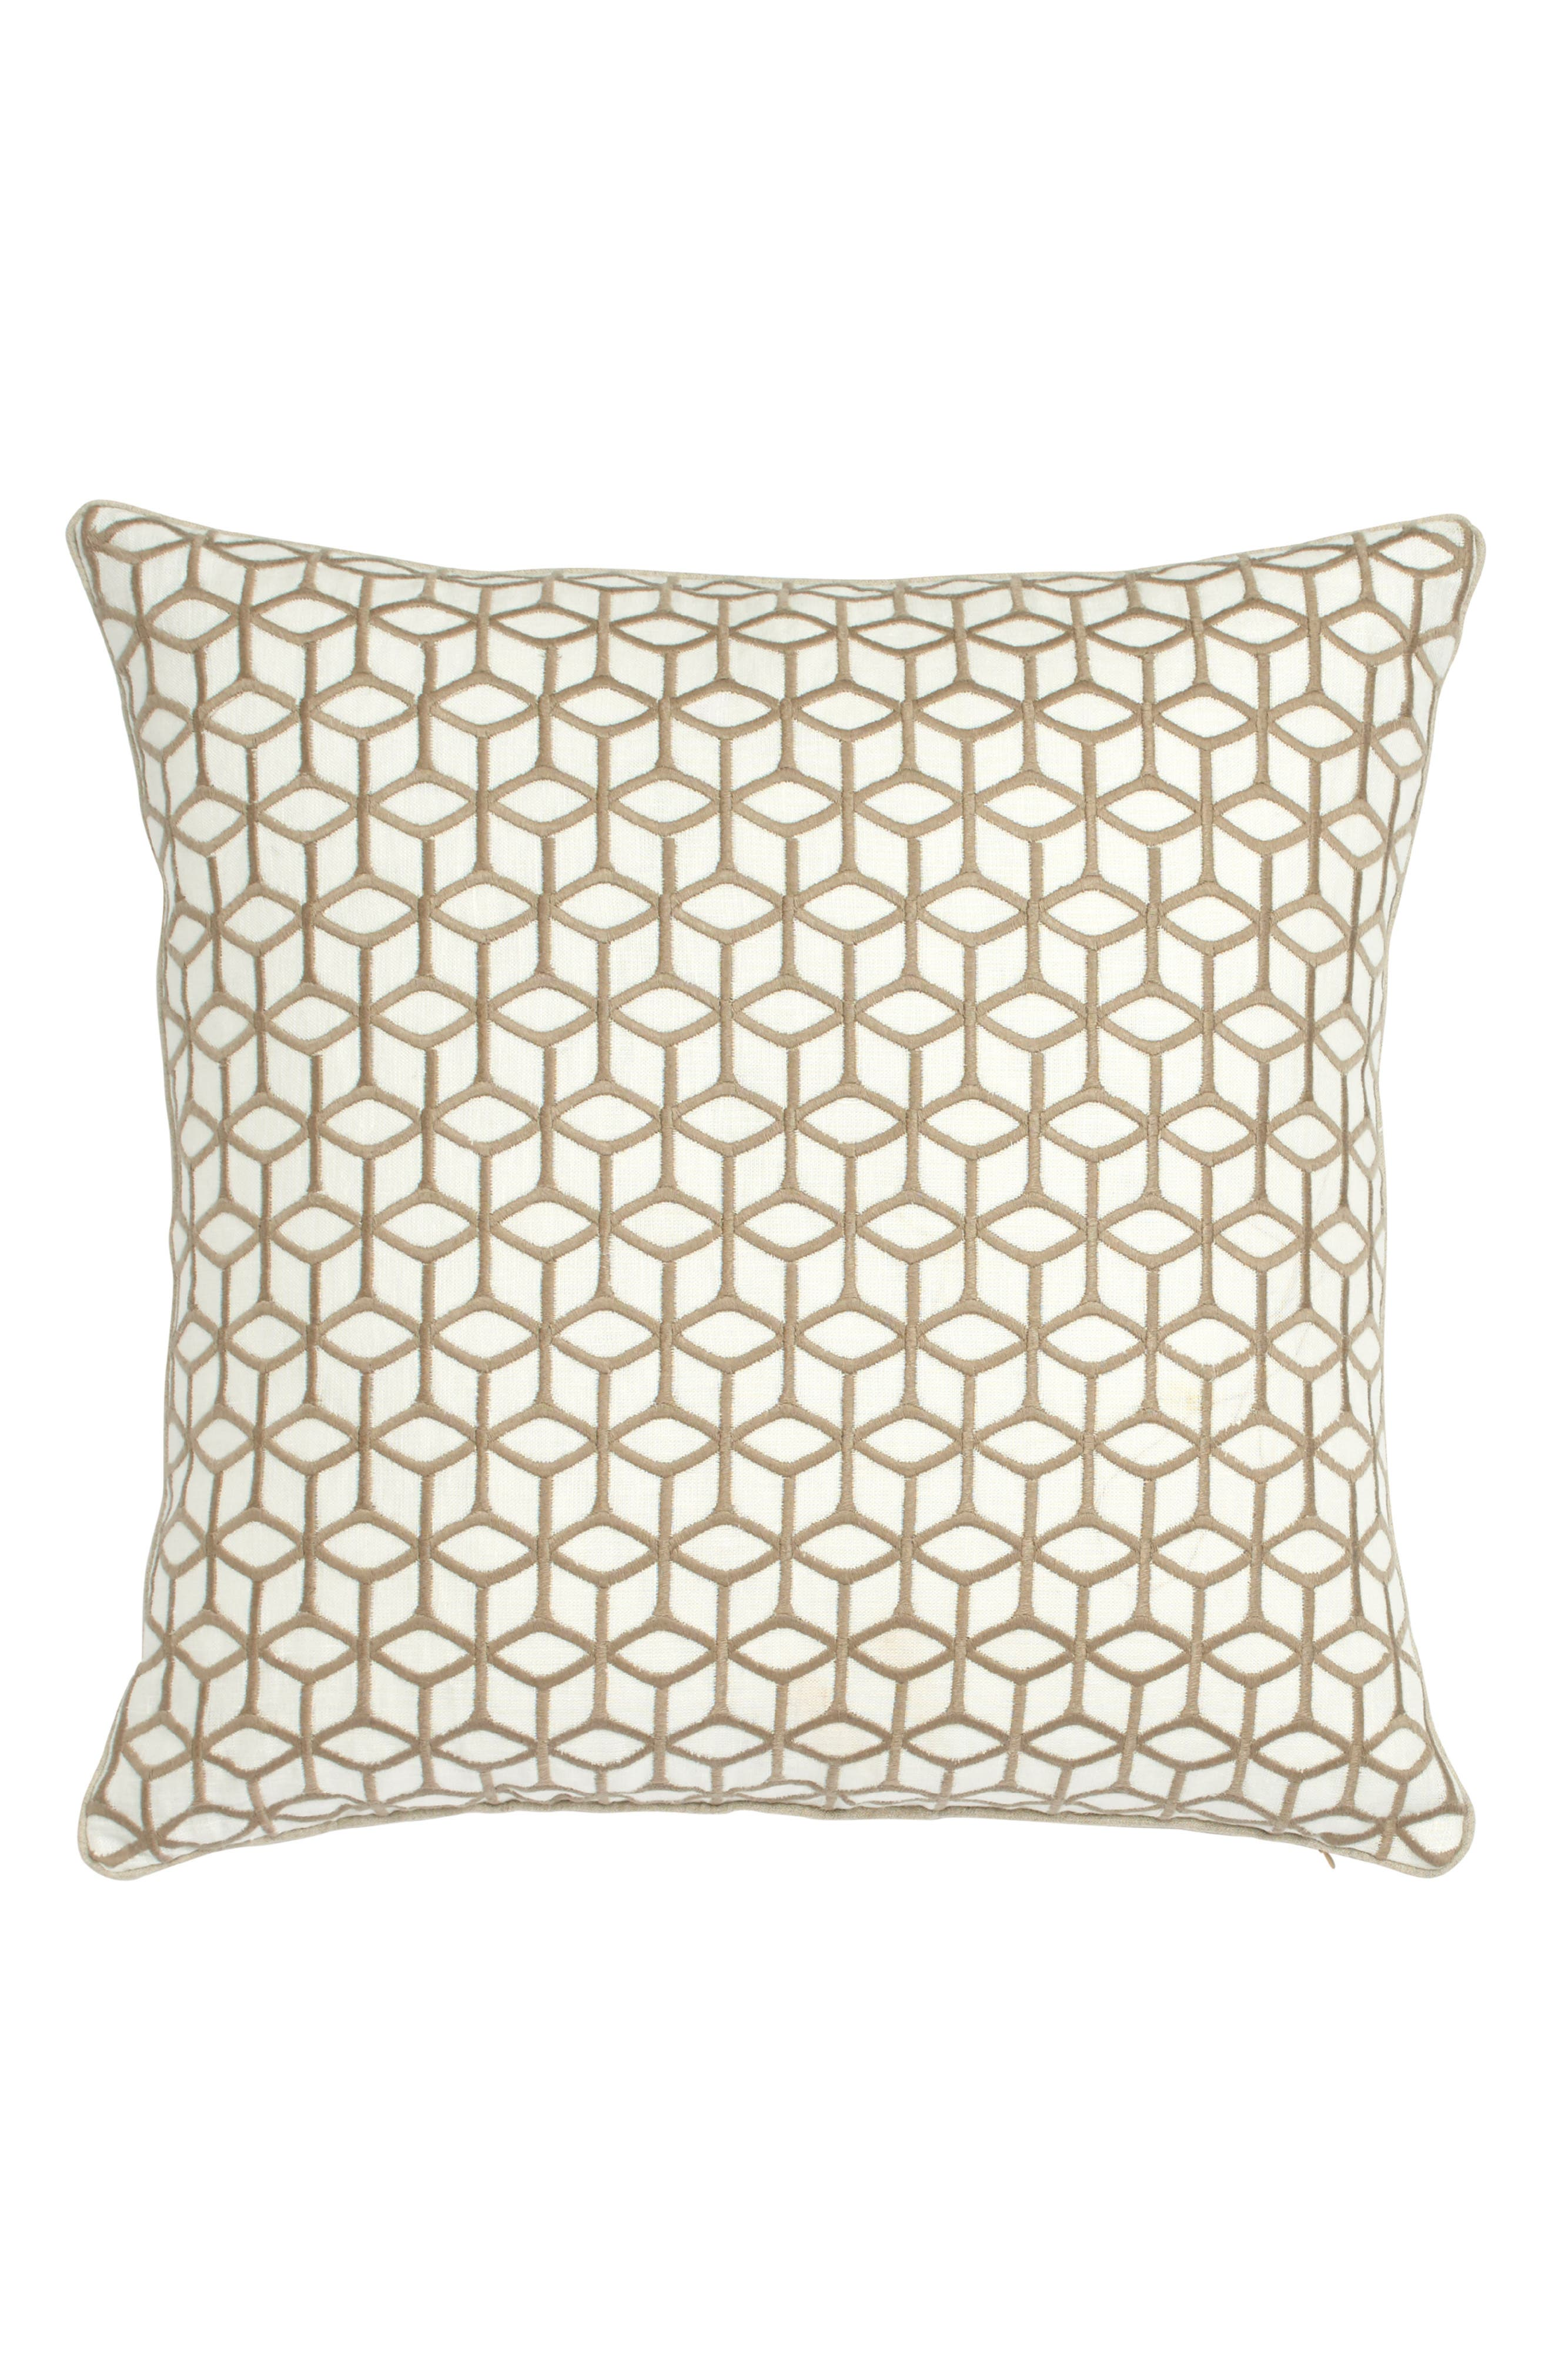 Lotus Accent Pillow,                             Main thumbnail 1, color,                             250